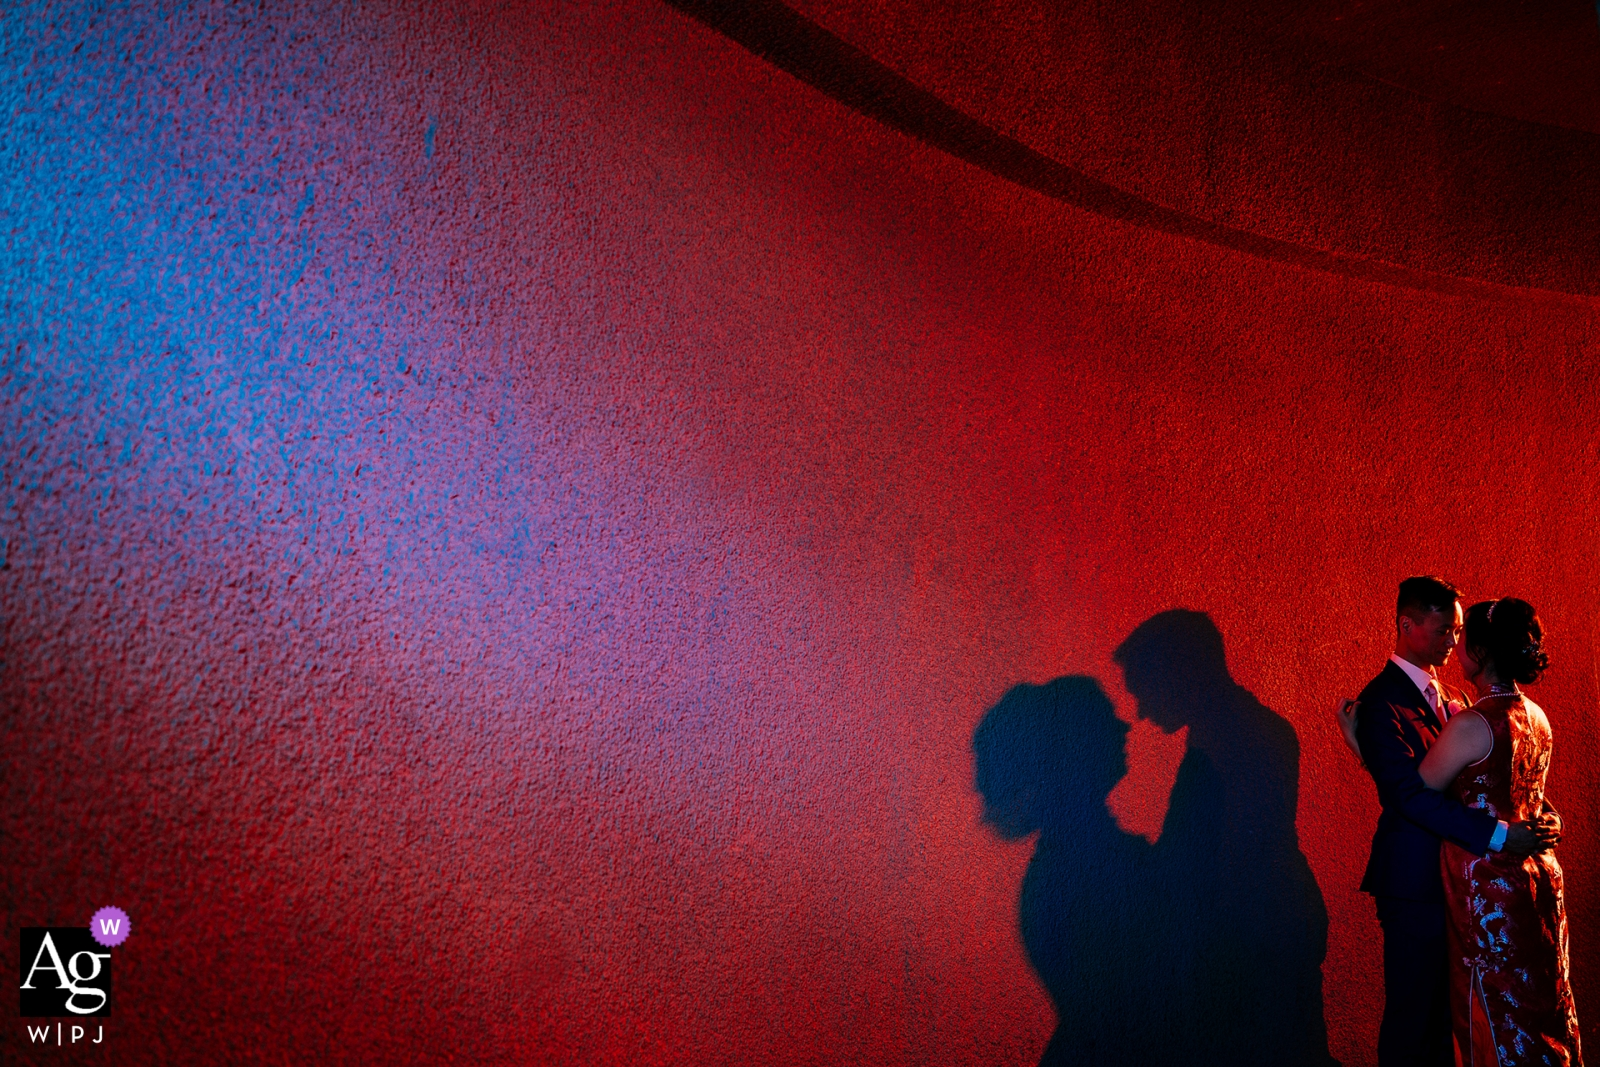 Pomona, Ca Bride and groom creatively lit during wedding portrait session against wall of red.